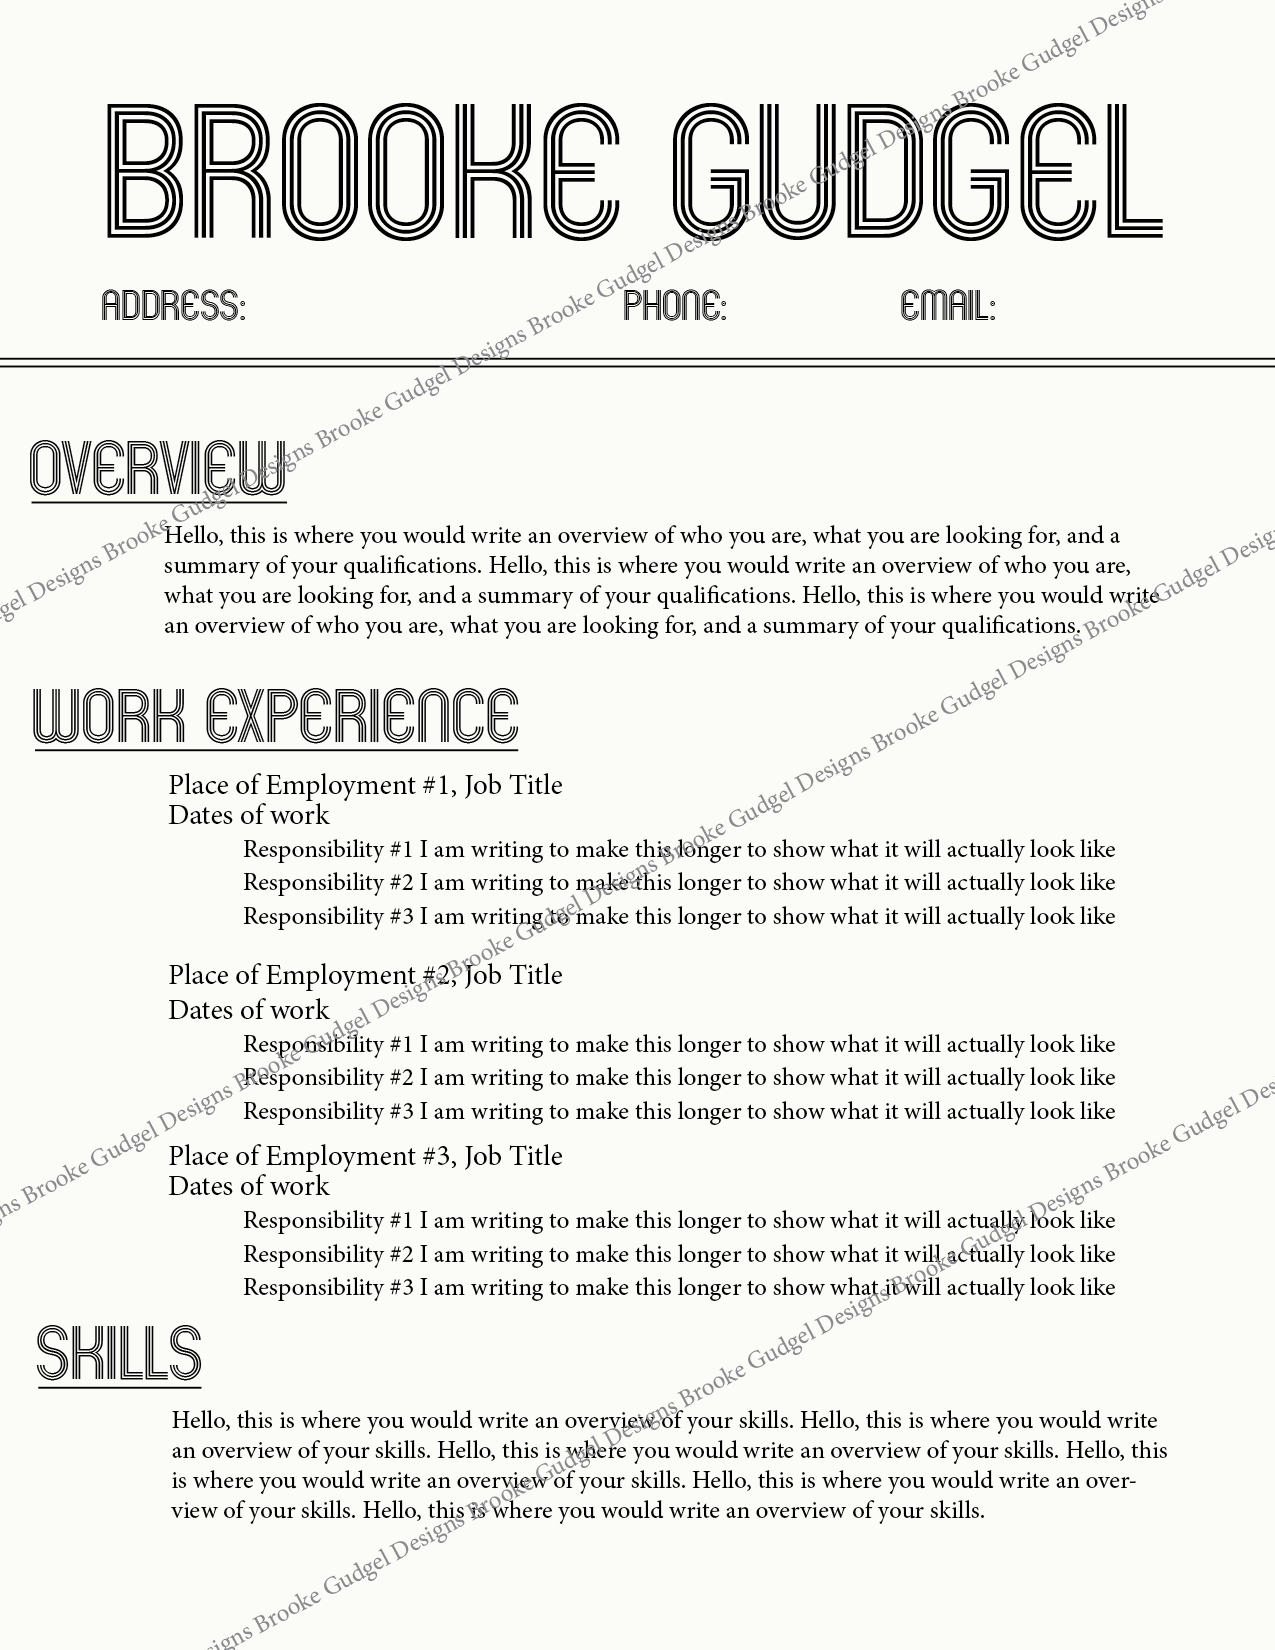 Retro Resume contact brookegudgelgmailcom rush sorority